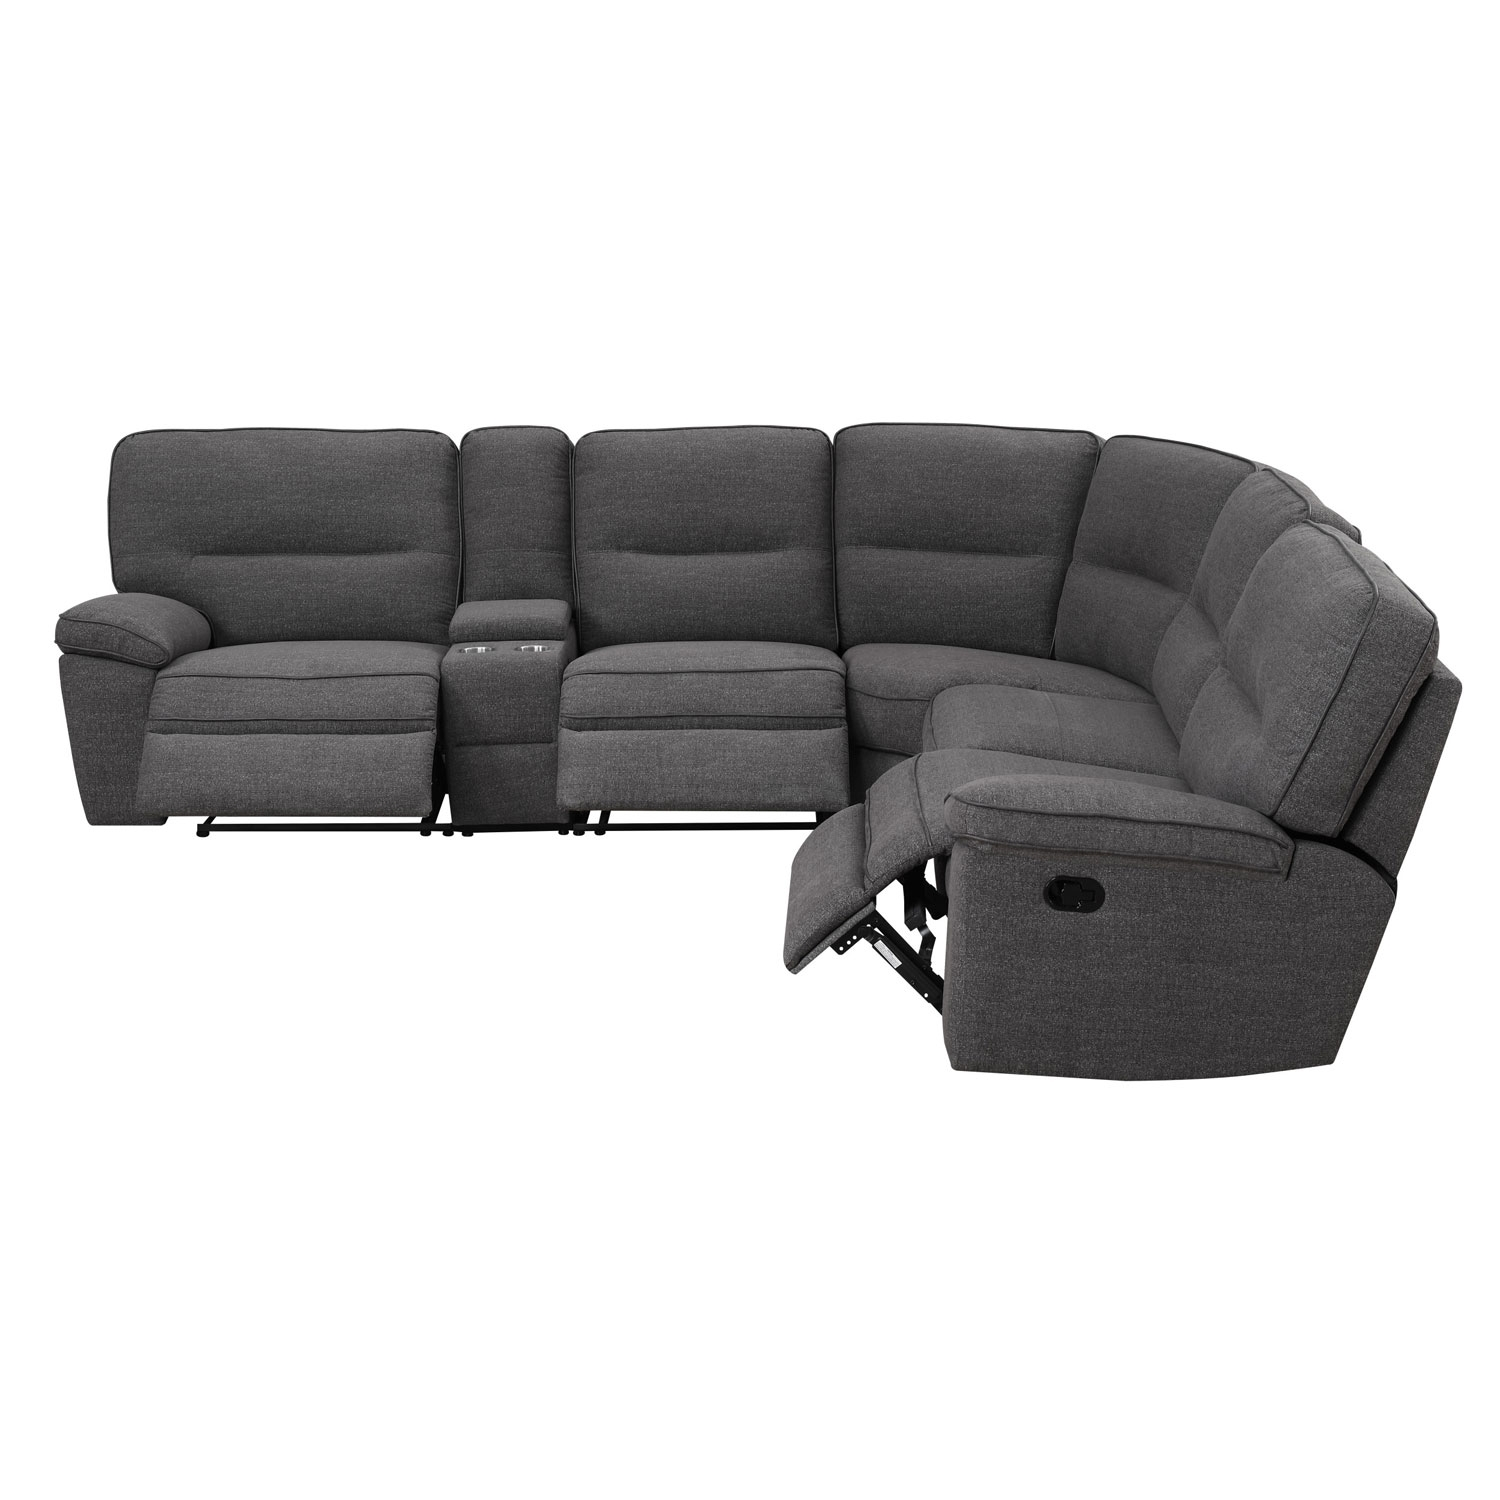 Emerald Home Furnishings Emerald Home Alberta 6 Piece Sectional For Norfolk Chocolate 6 Piece Sectionals (Gallery 11 of 30)